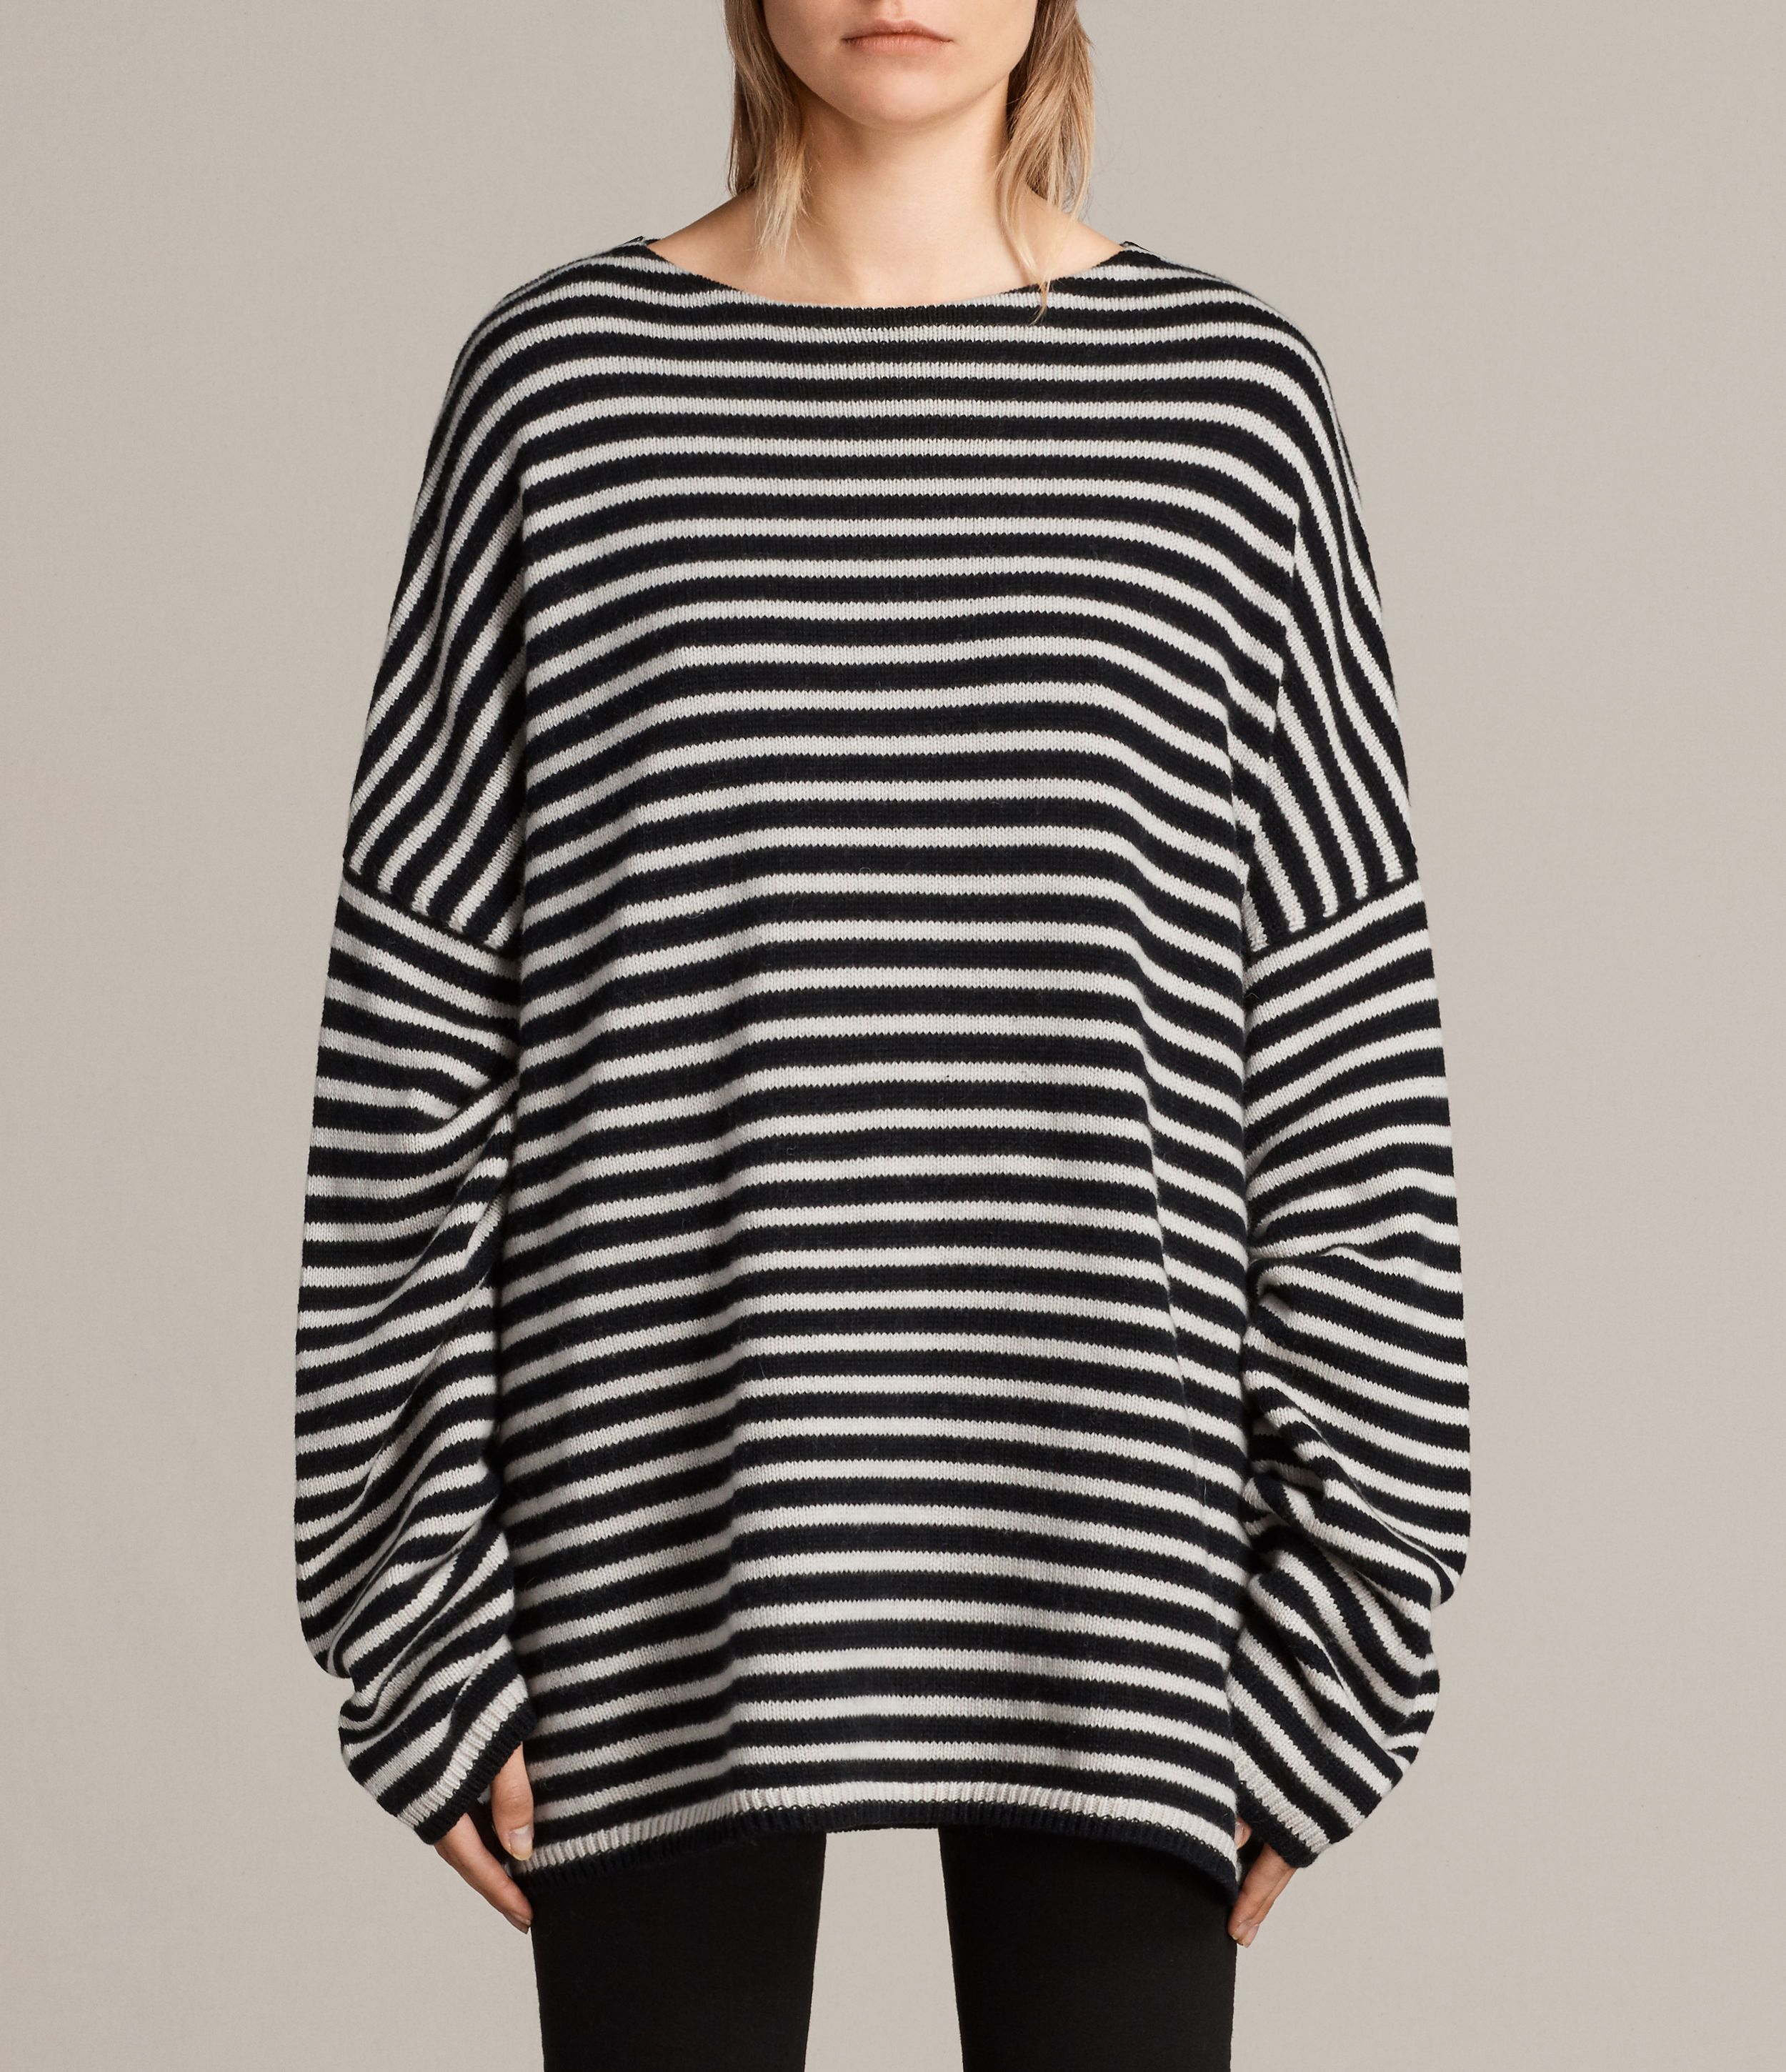 c2164a1b12801 Marcel Crew Jumper - All Saints